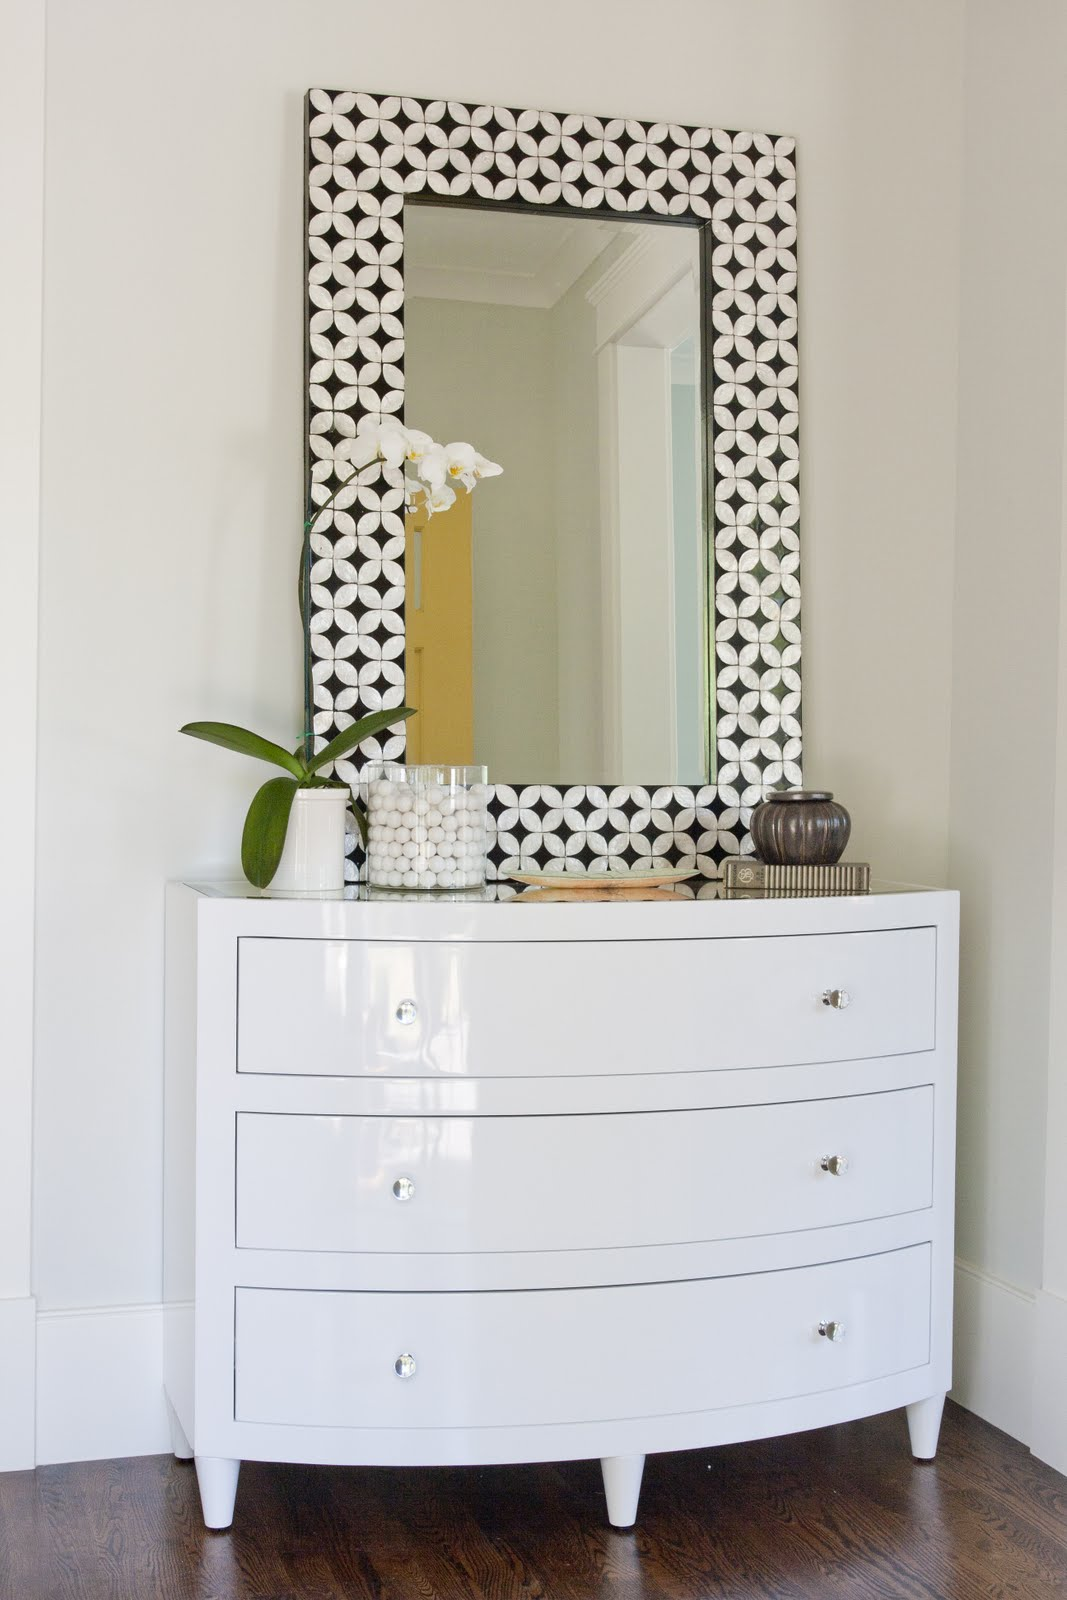 Sheu0027s Sophisticated And Classic With A Little Sparkle, Thanks To A Beveled Mirror  Top And Those Sleek Acrylic Knobs. We Love How Caitlin Incorporated Our ...